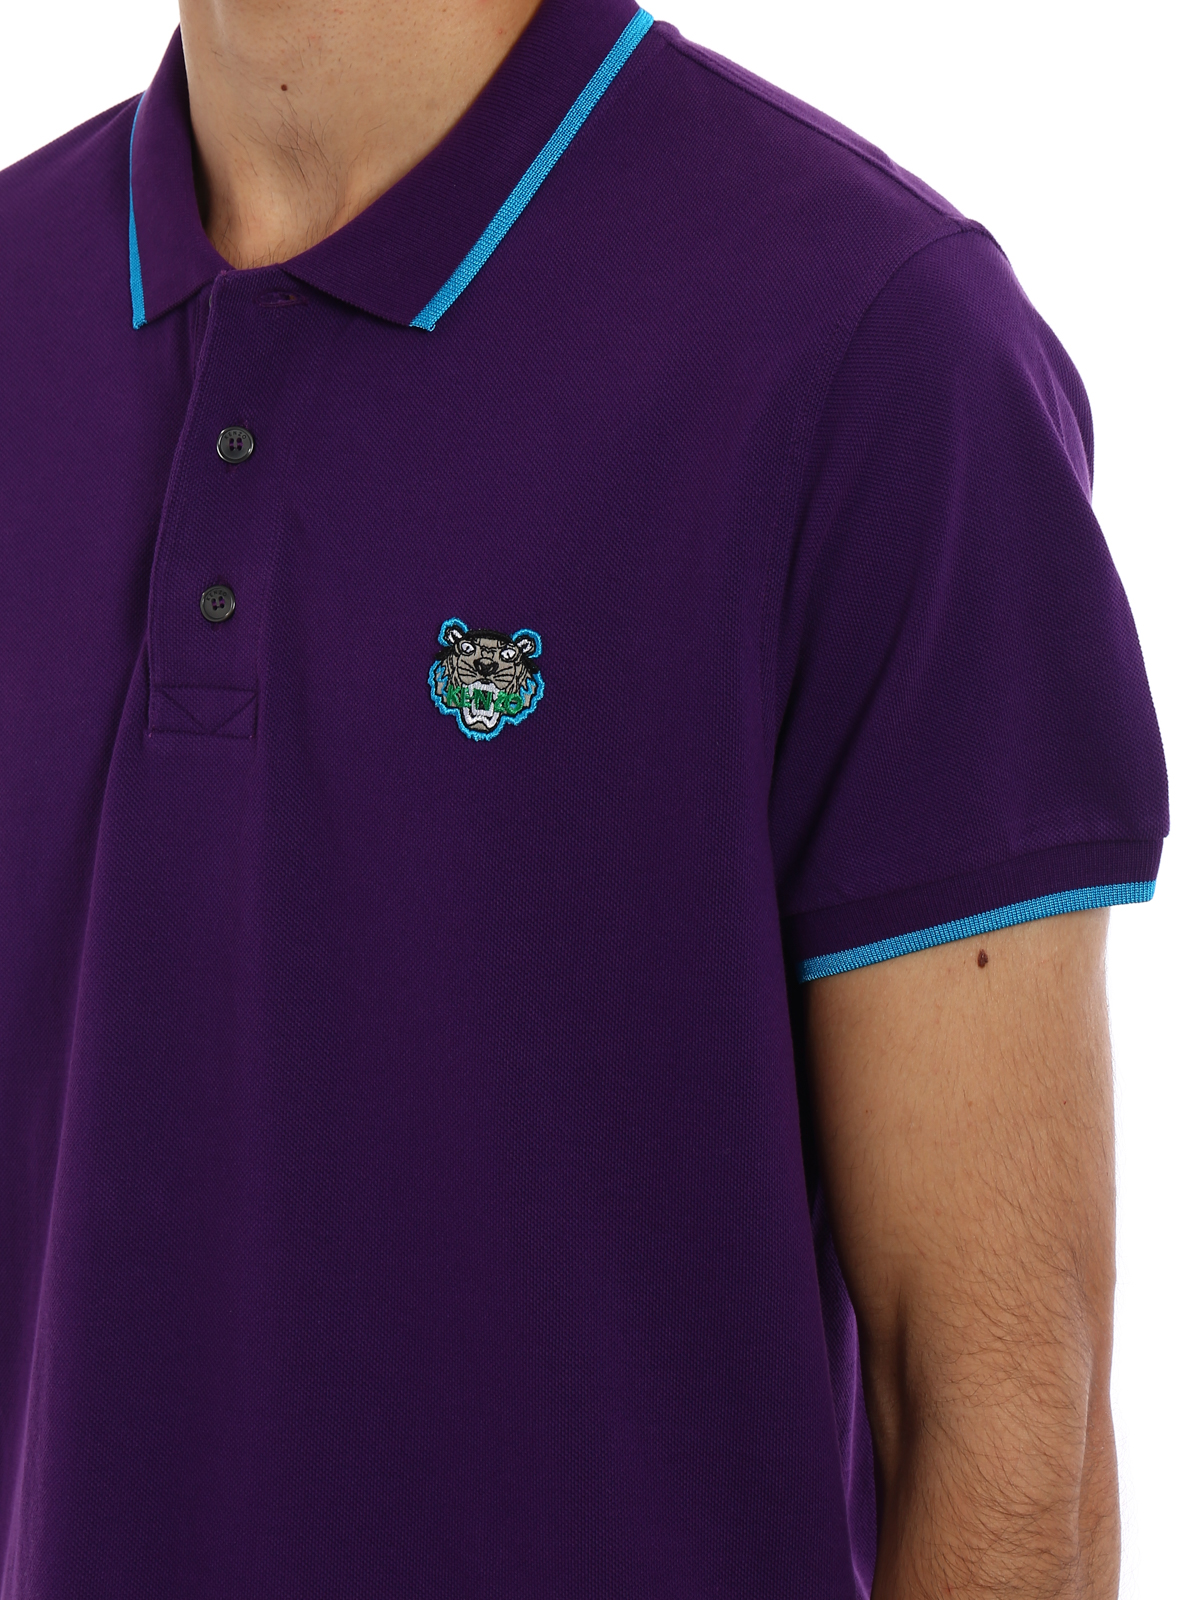 875dbe984 Kenzo - Tiger logo detail cotton polo shirt - polo shirts ...